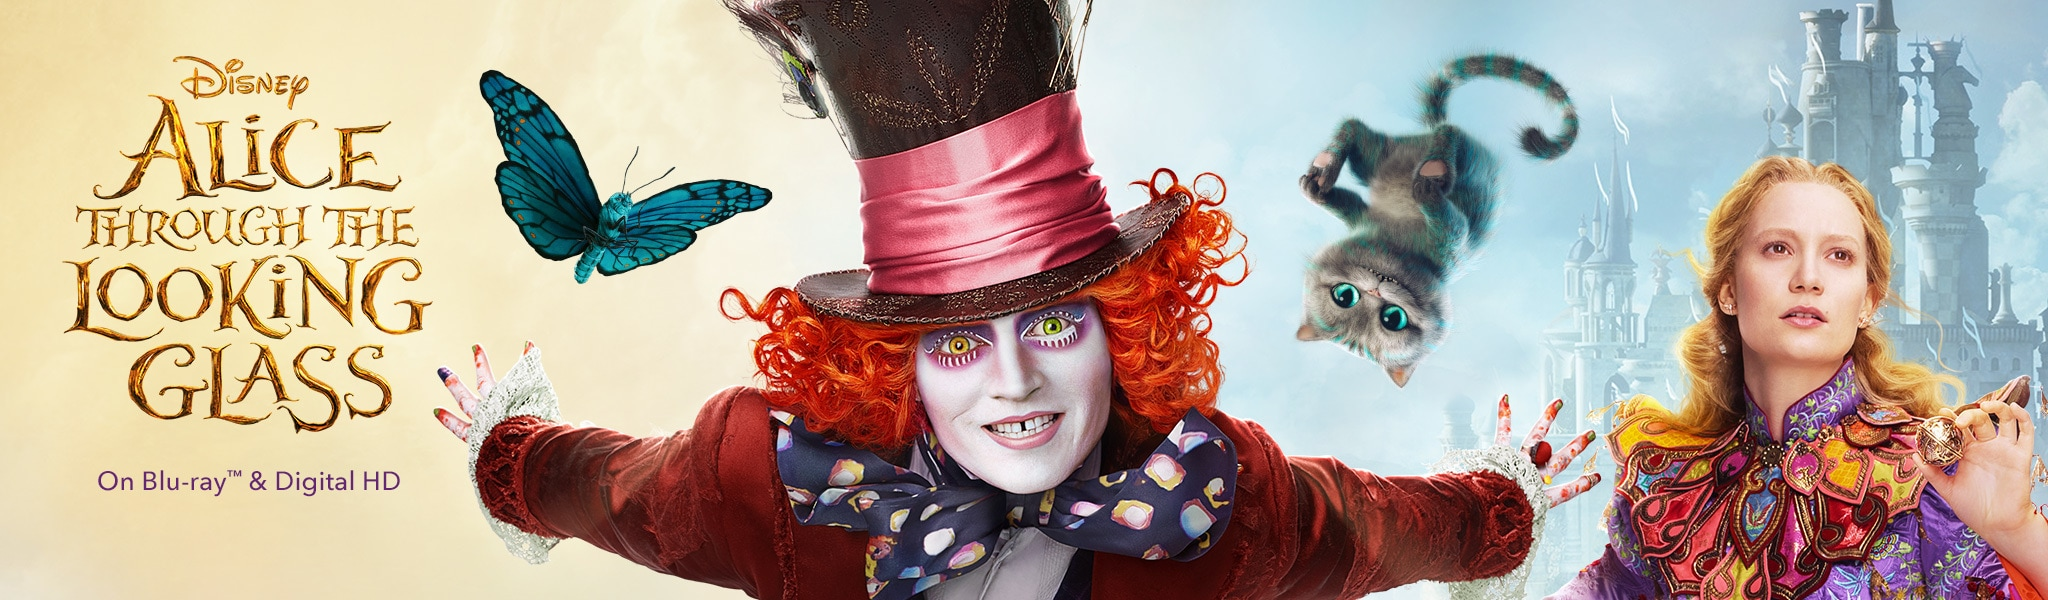 Alice Through the Looking Glass - on Blu-Ray Digital HD